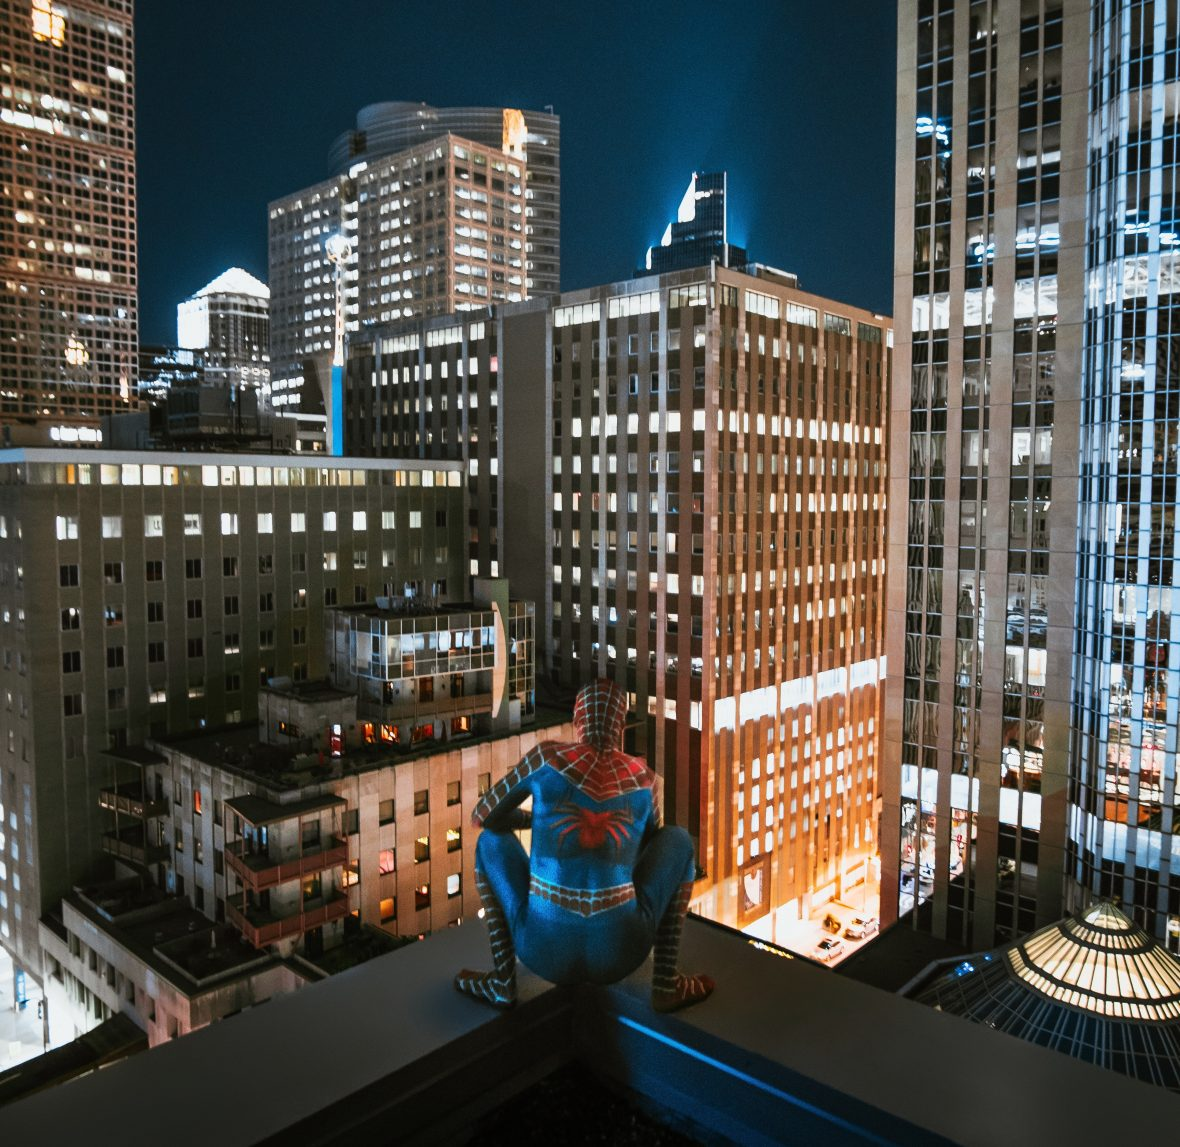 Spider-Man sitting on top of skyscraper, looking out at city at night